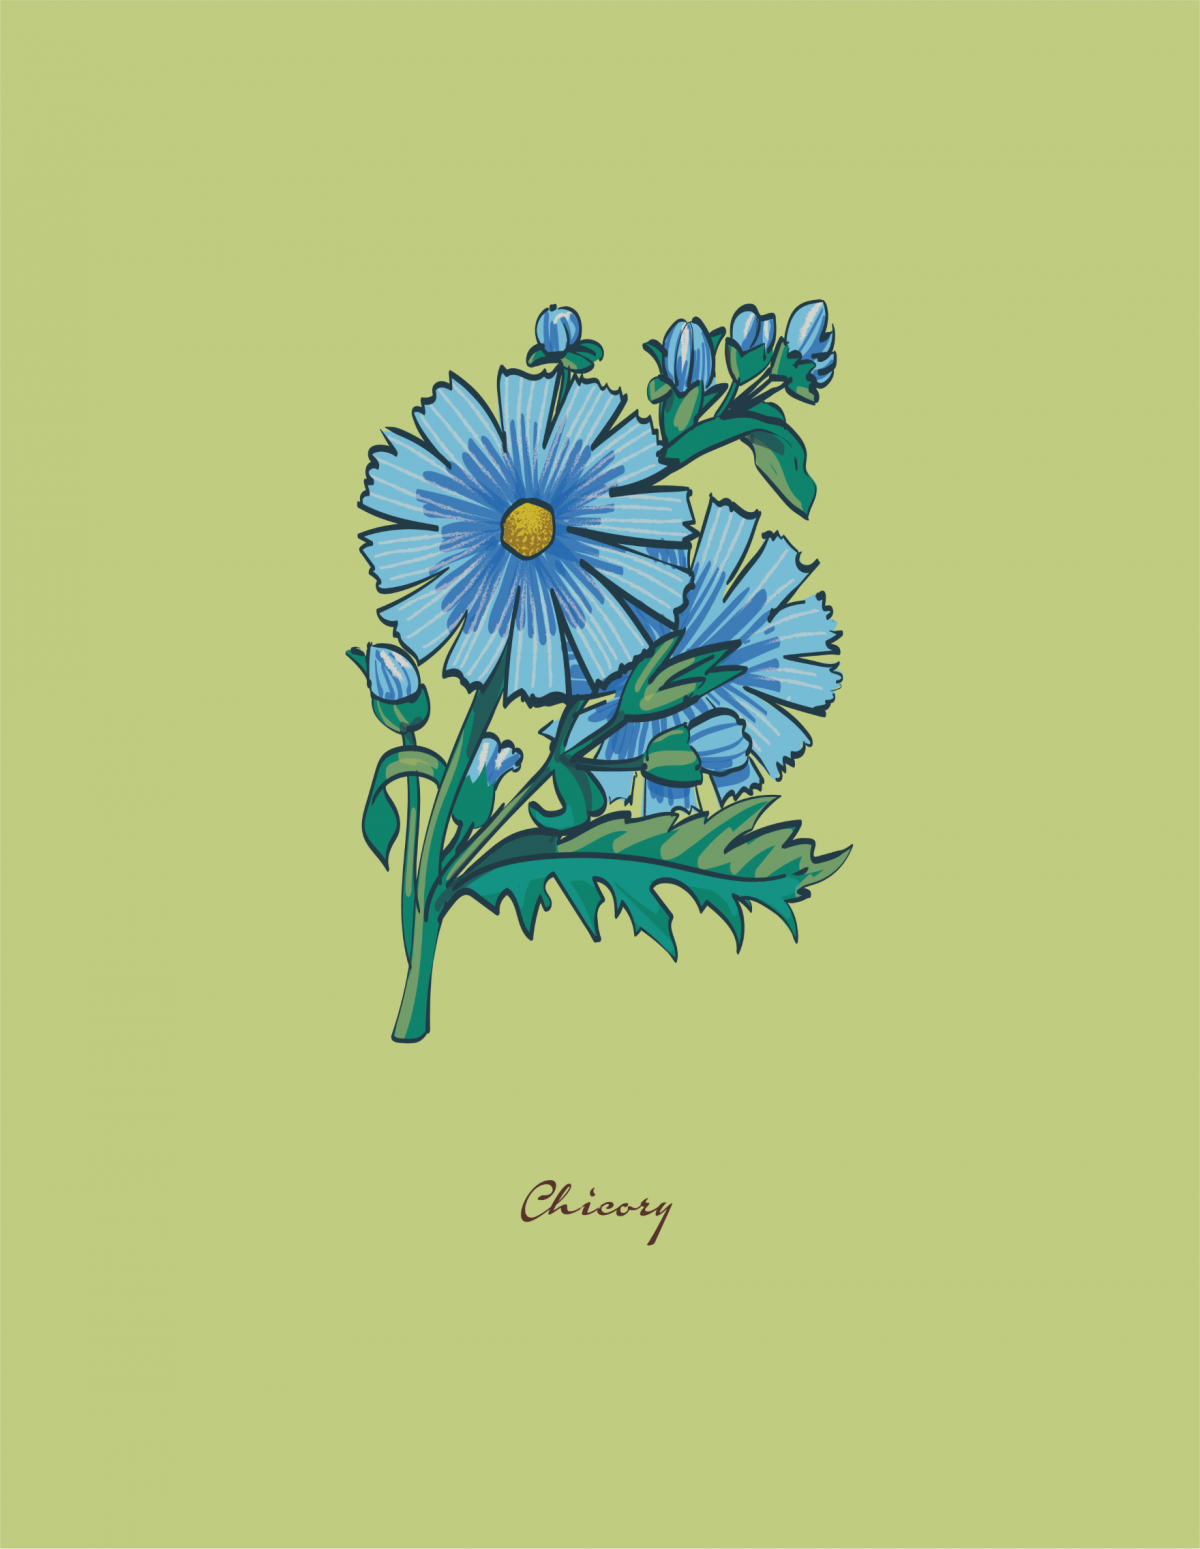 botanical illustration of a Chicory flower